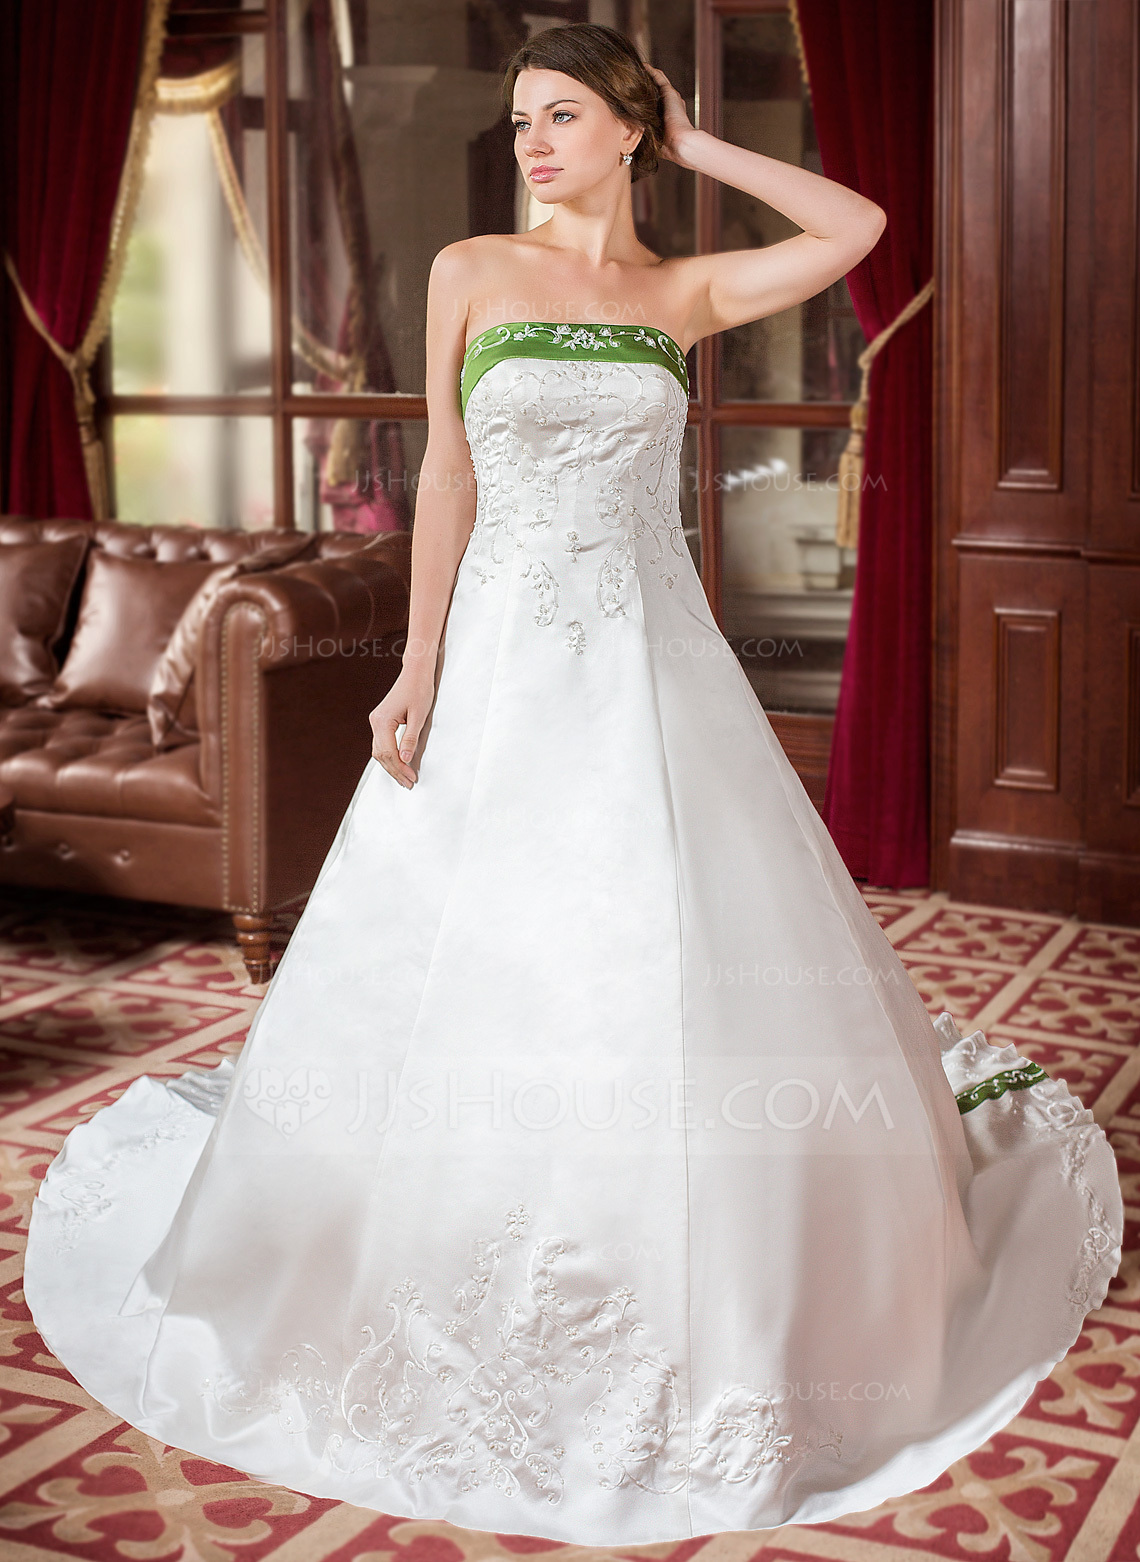 Ball-Gown Strapless Royal Train Satin Wedding Dress With Embroidered ...